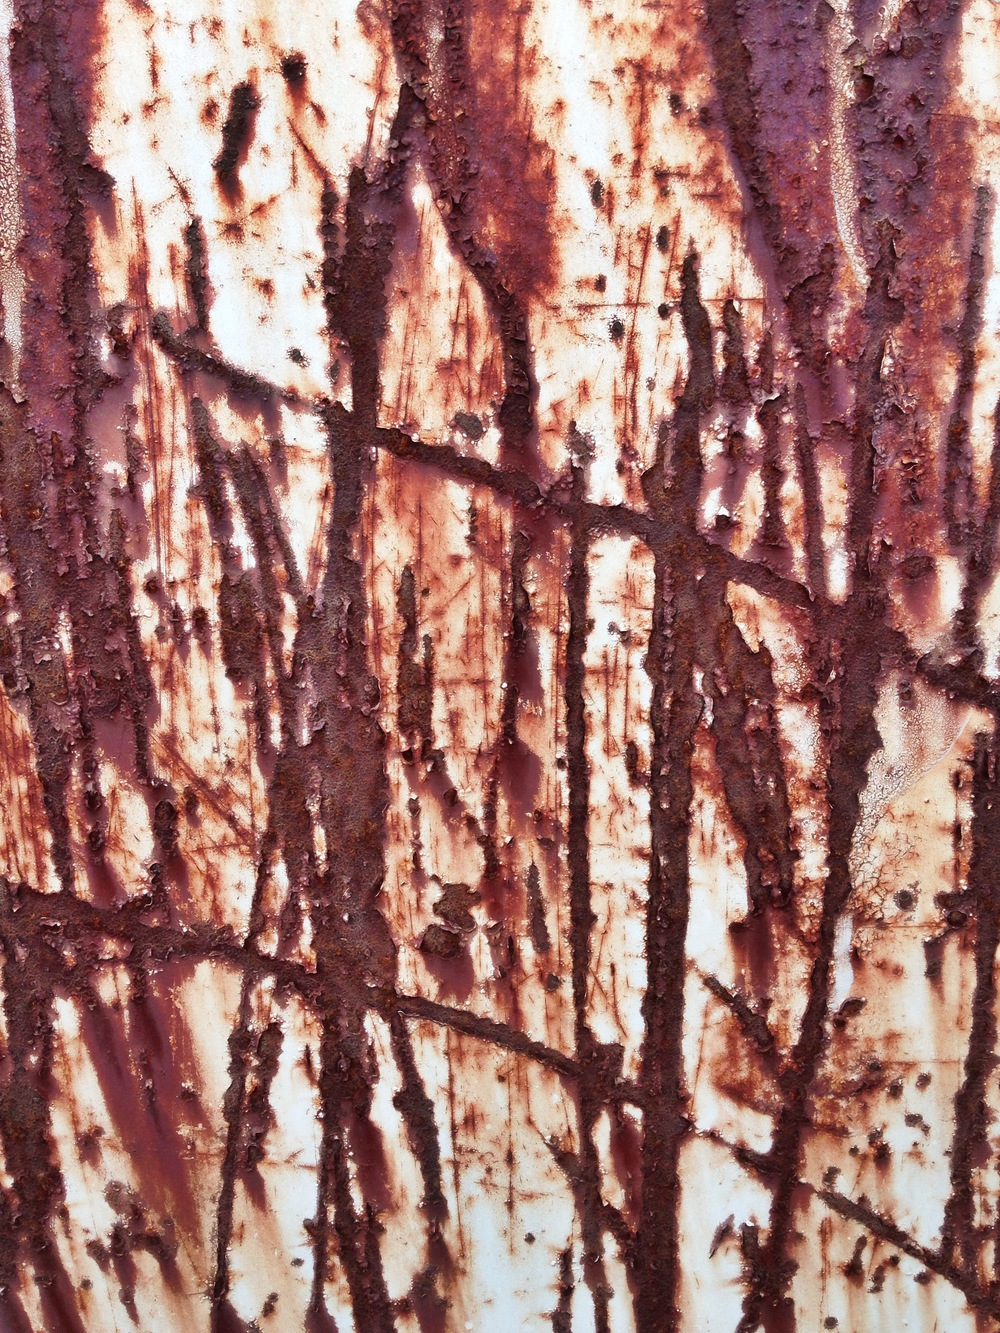 Rust Scratches, Madeline Young